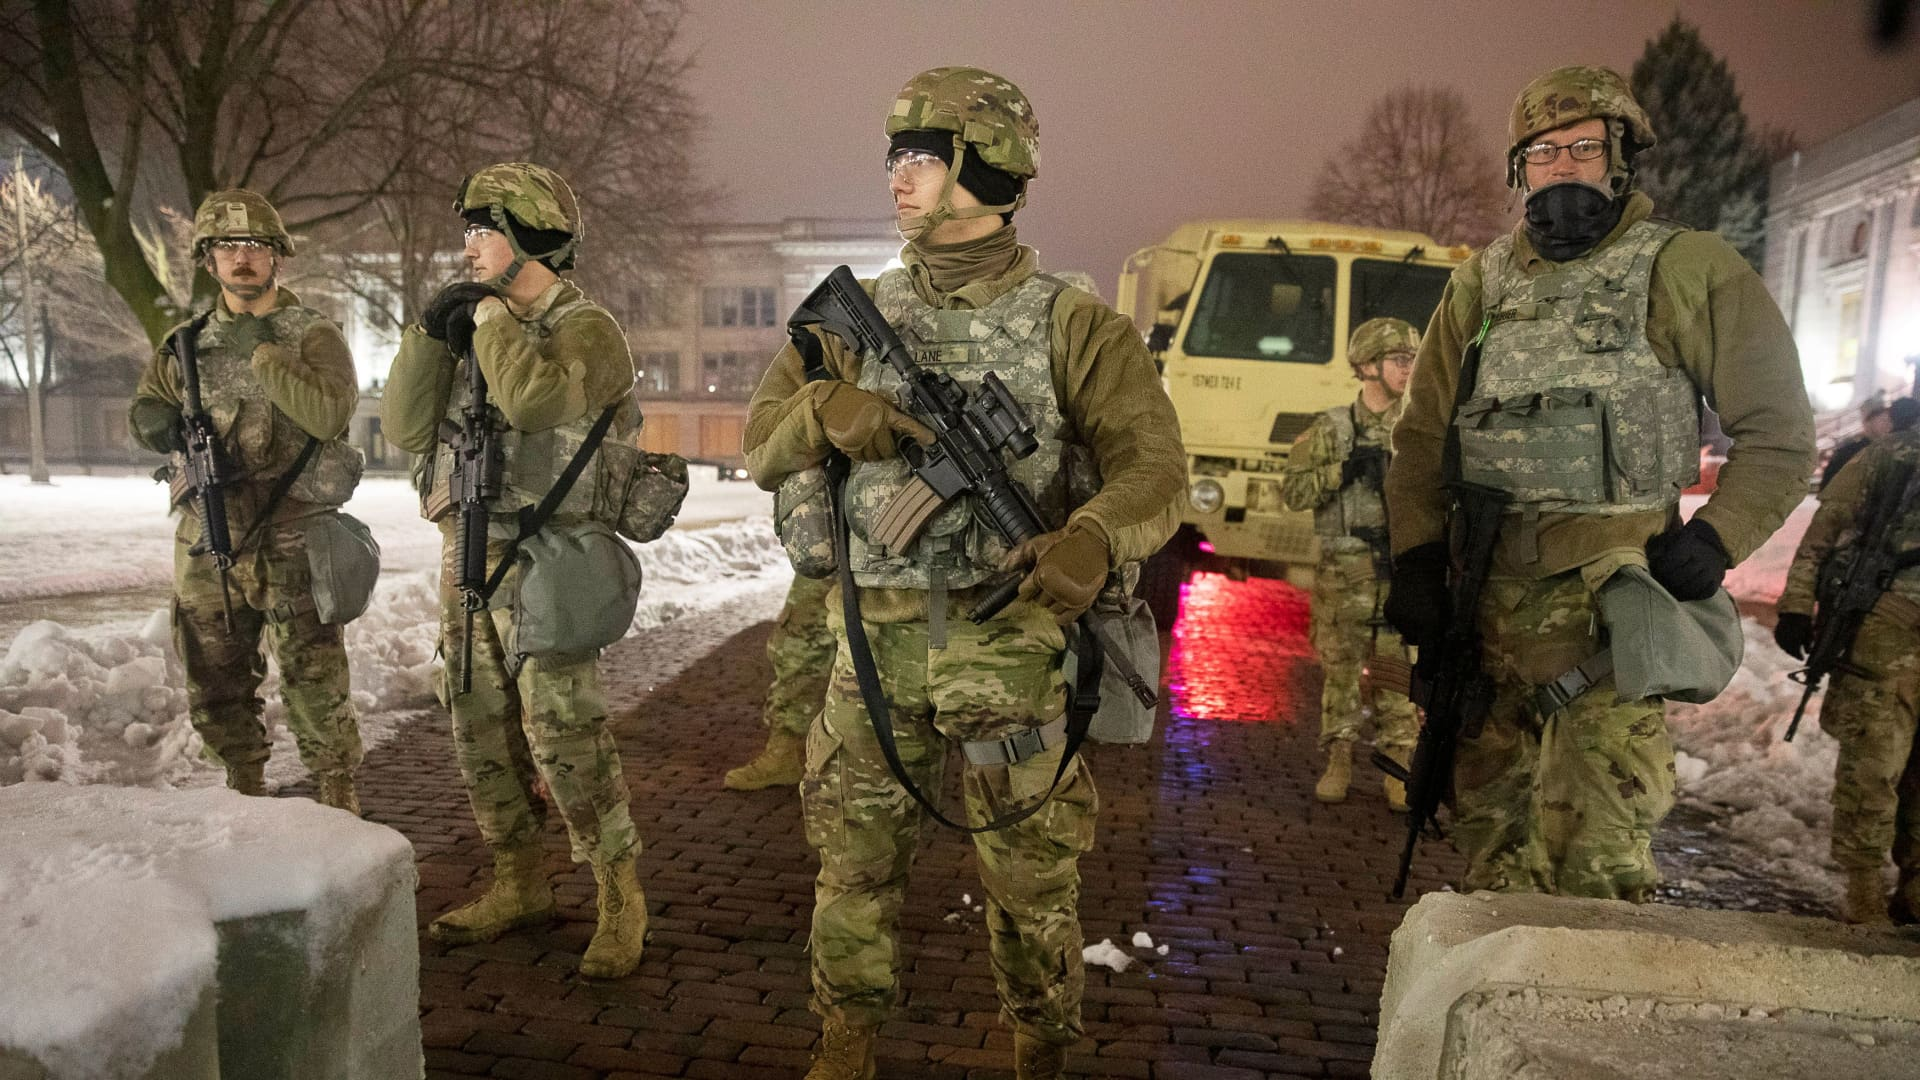 Members of the National Guard stand guard near the Kenosha, Wisconsin, county courthouse on January 5, 2021, after the prosecutor announced no charges would be filed in the wounding of Jacob Blake, a Black man left paralyzed in an August 2020 police shooting.